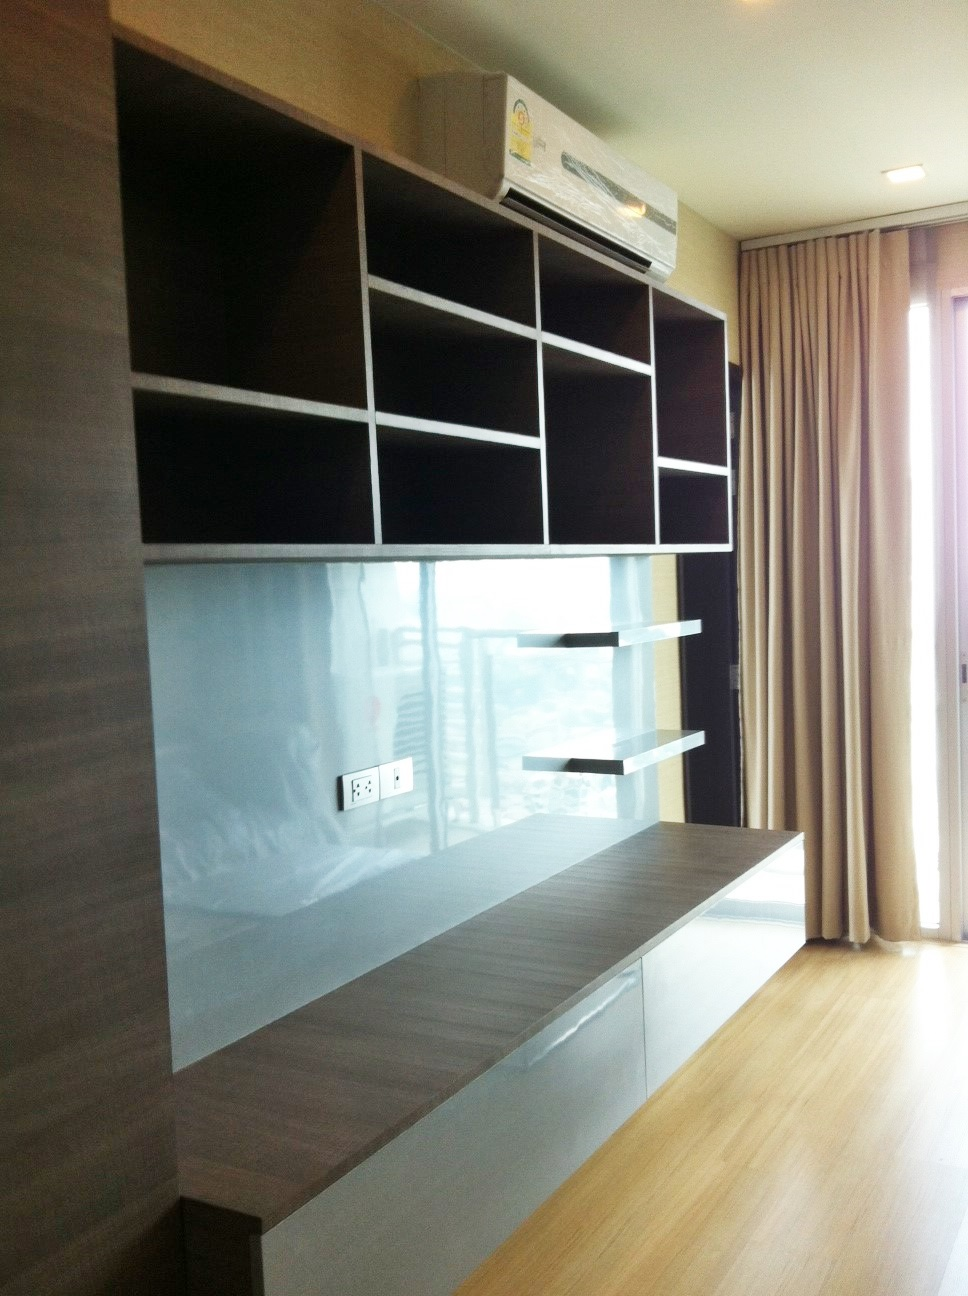 RE/MAX Properties Agency's RENT 1 Bedroom 52 Sq.m at Sky Walk condominium 10